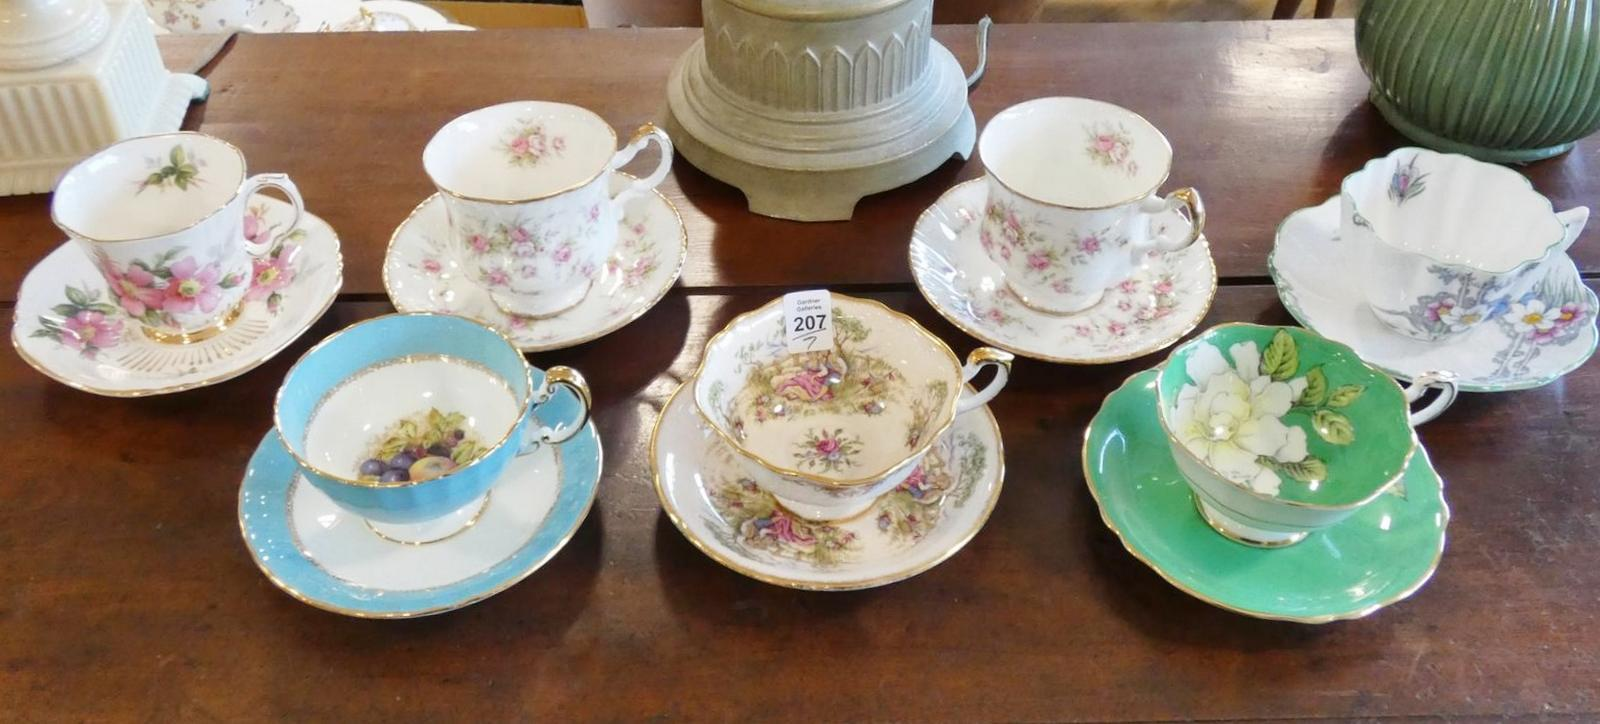 SEVEN CUPS AND SAUCERS